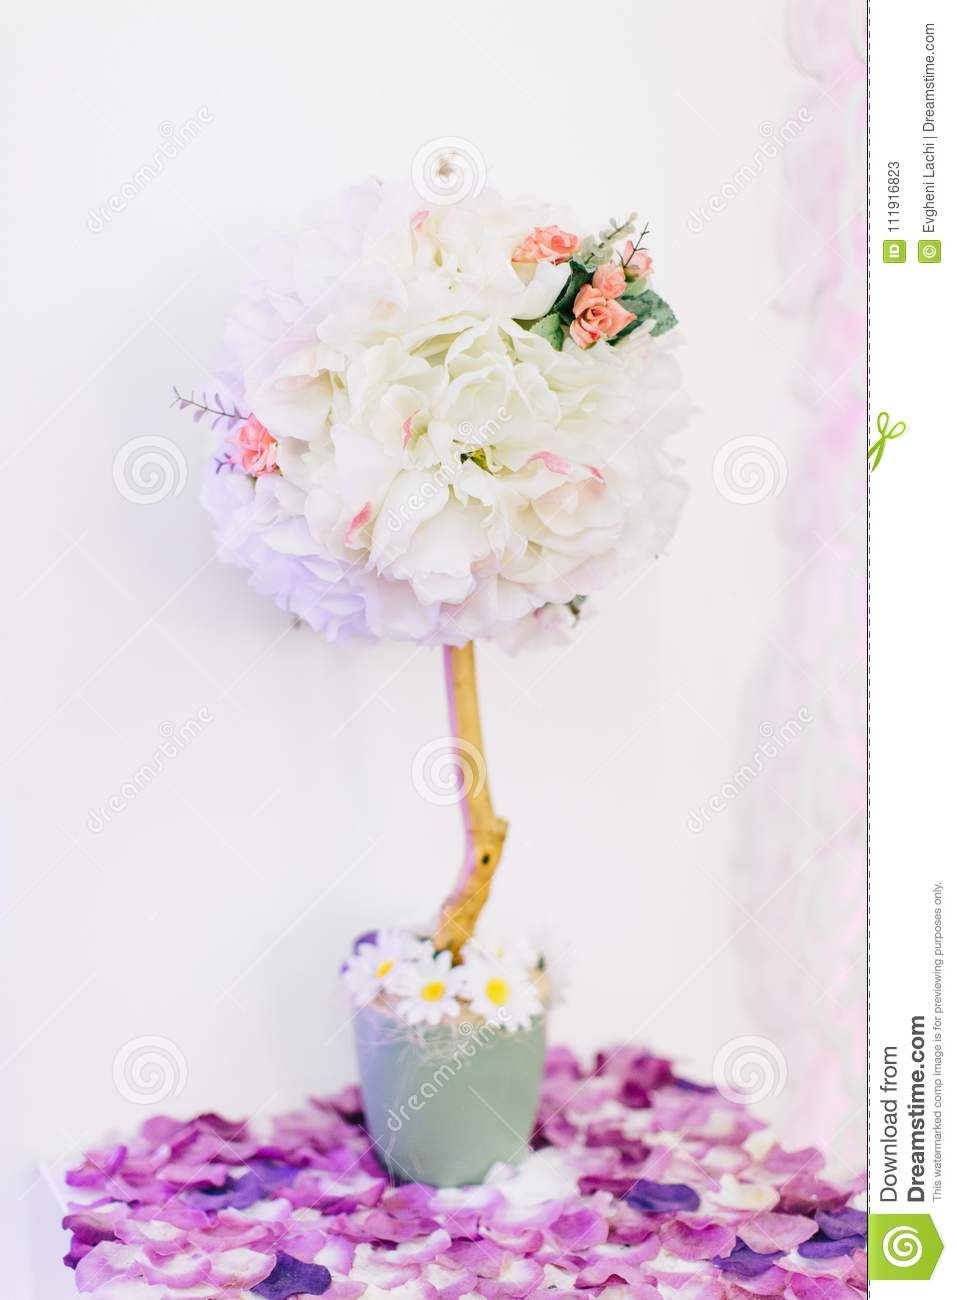 Indoor Summer Or Spring Flowers For Wedding Decor Stock Image